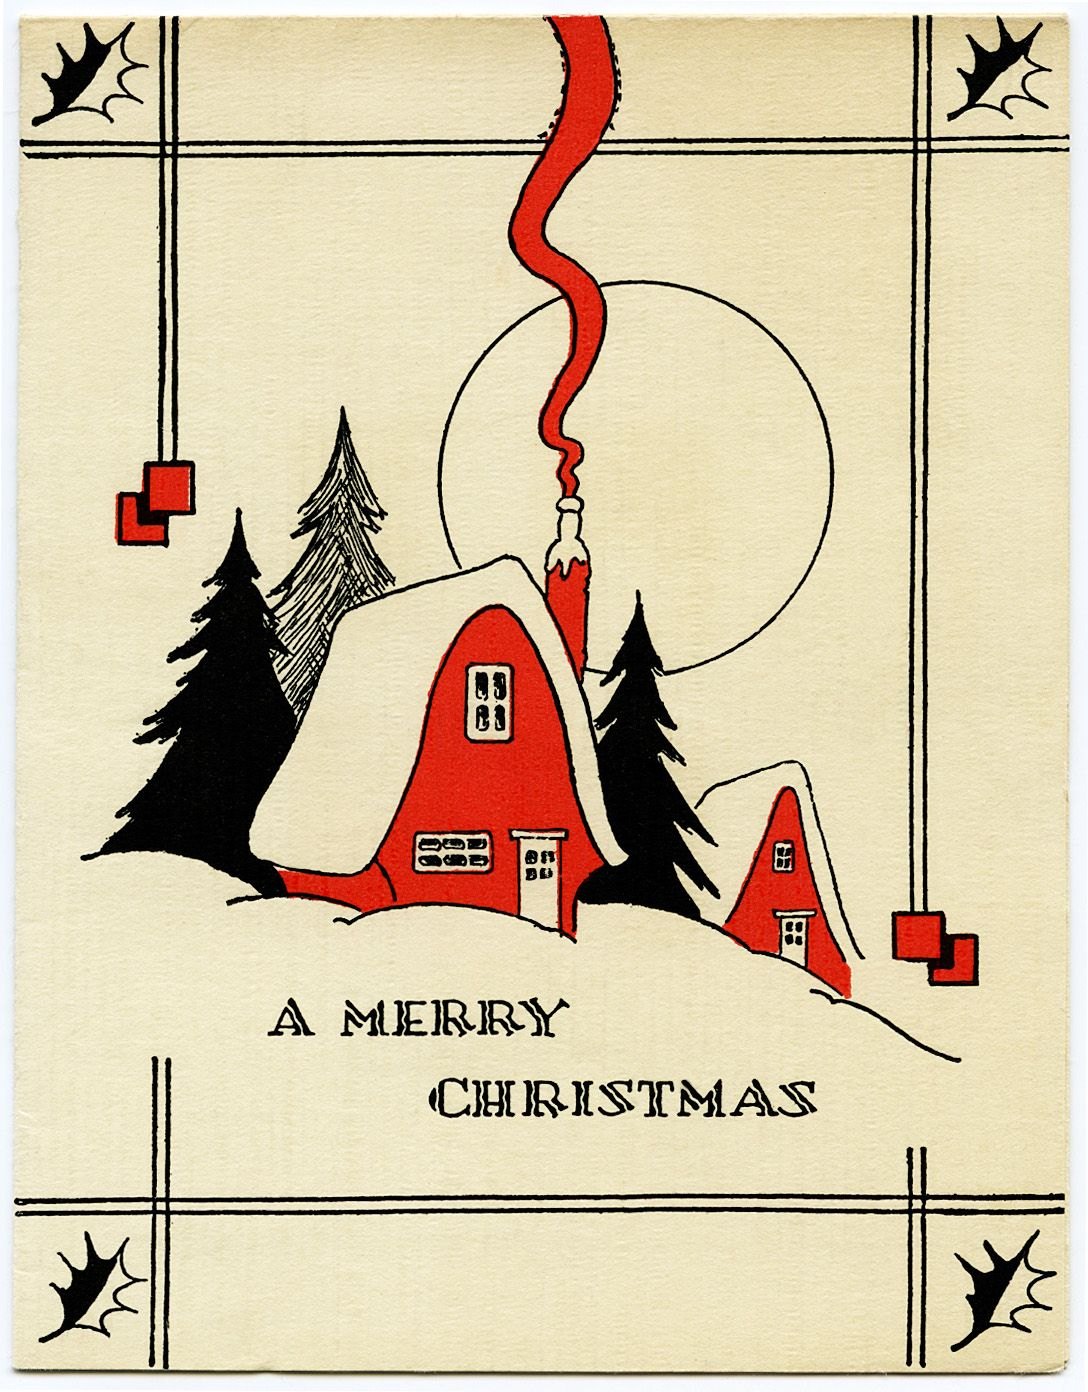 Free printable vintage christmas cards - Old Design Shop Free Printable Retro Red House Christmas Card